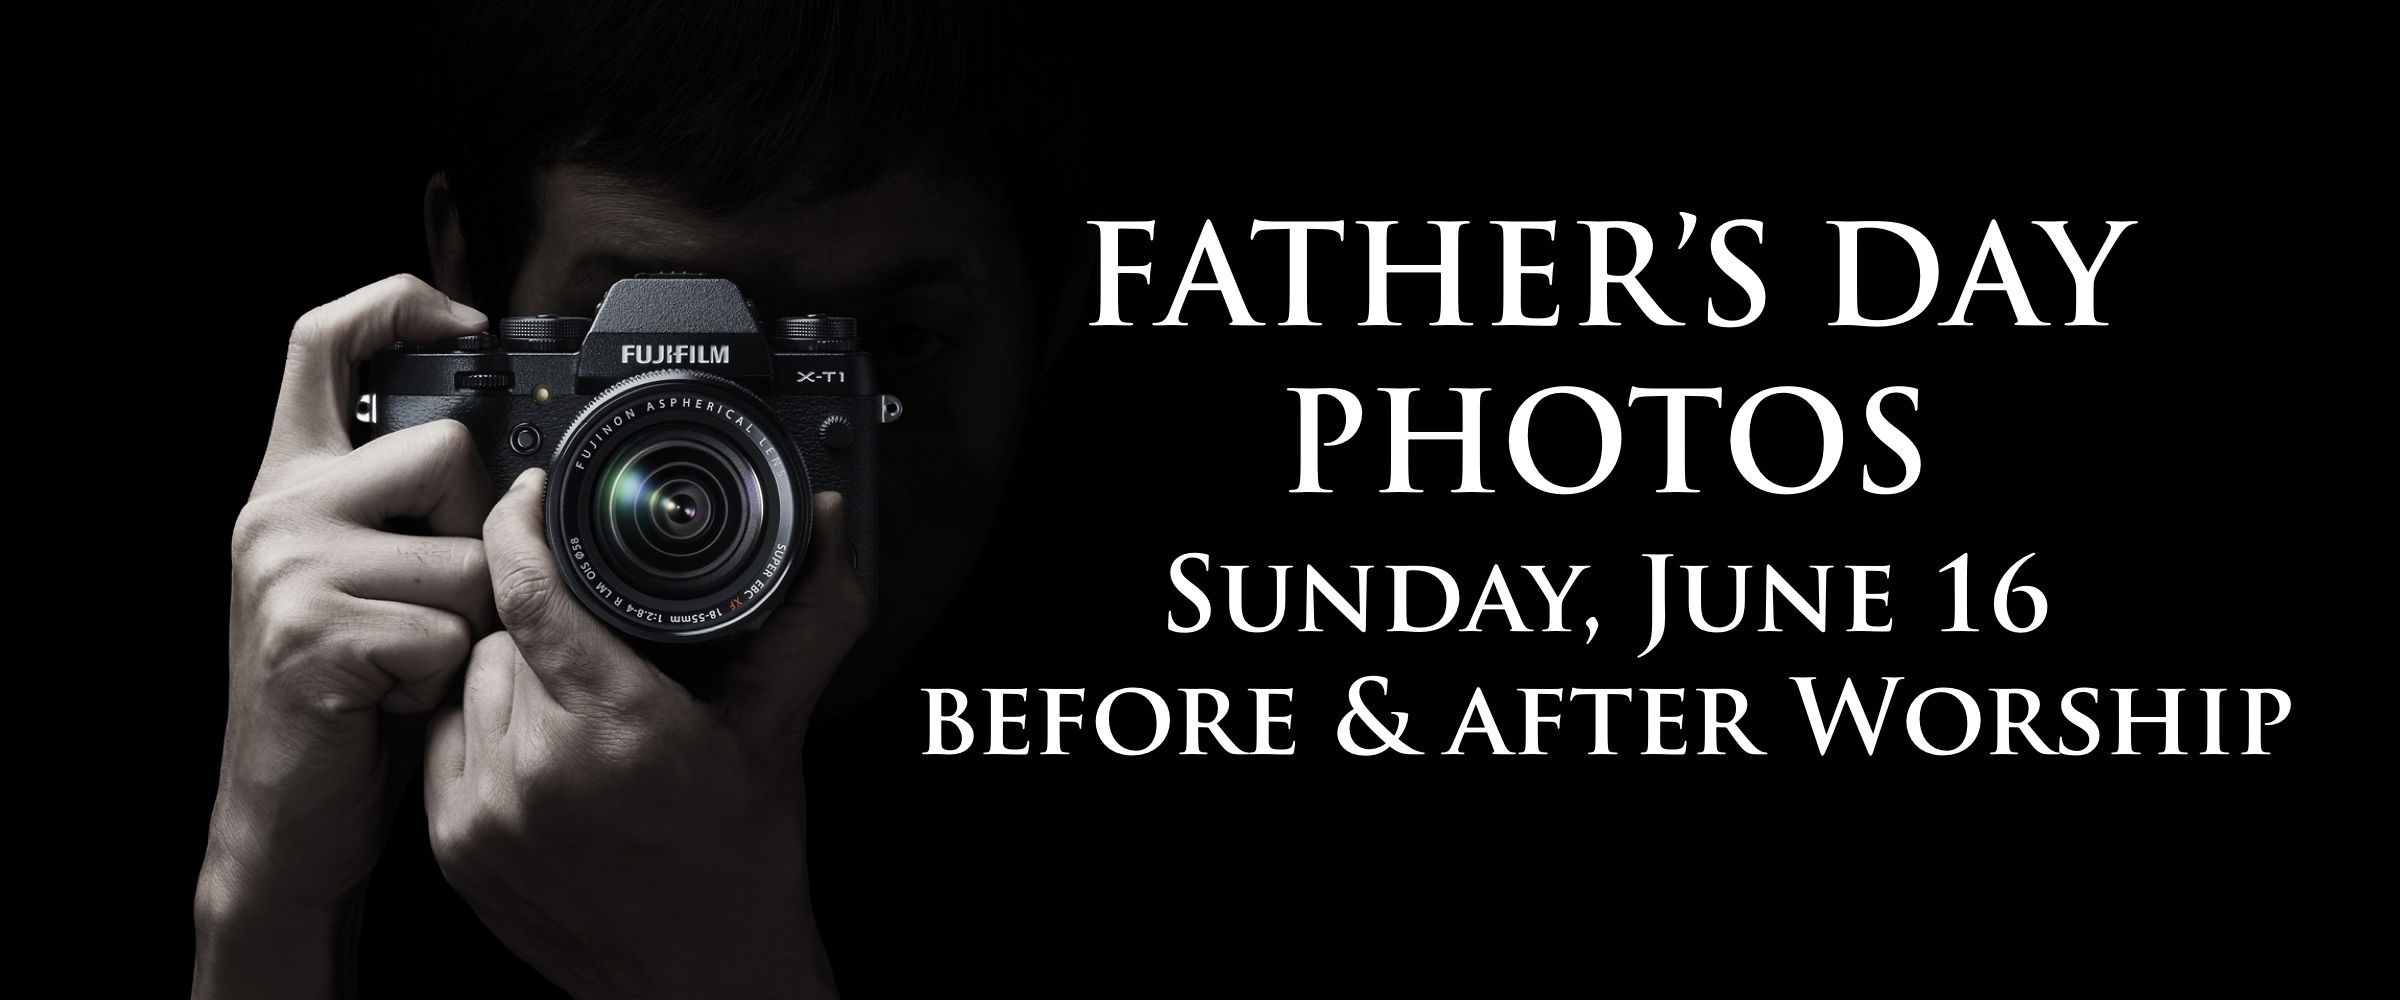 FATHER'S DAY PHOTES (Event Thumbnail).001.png